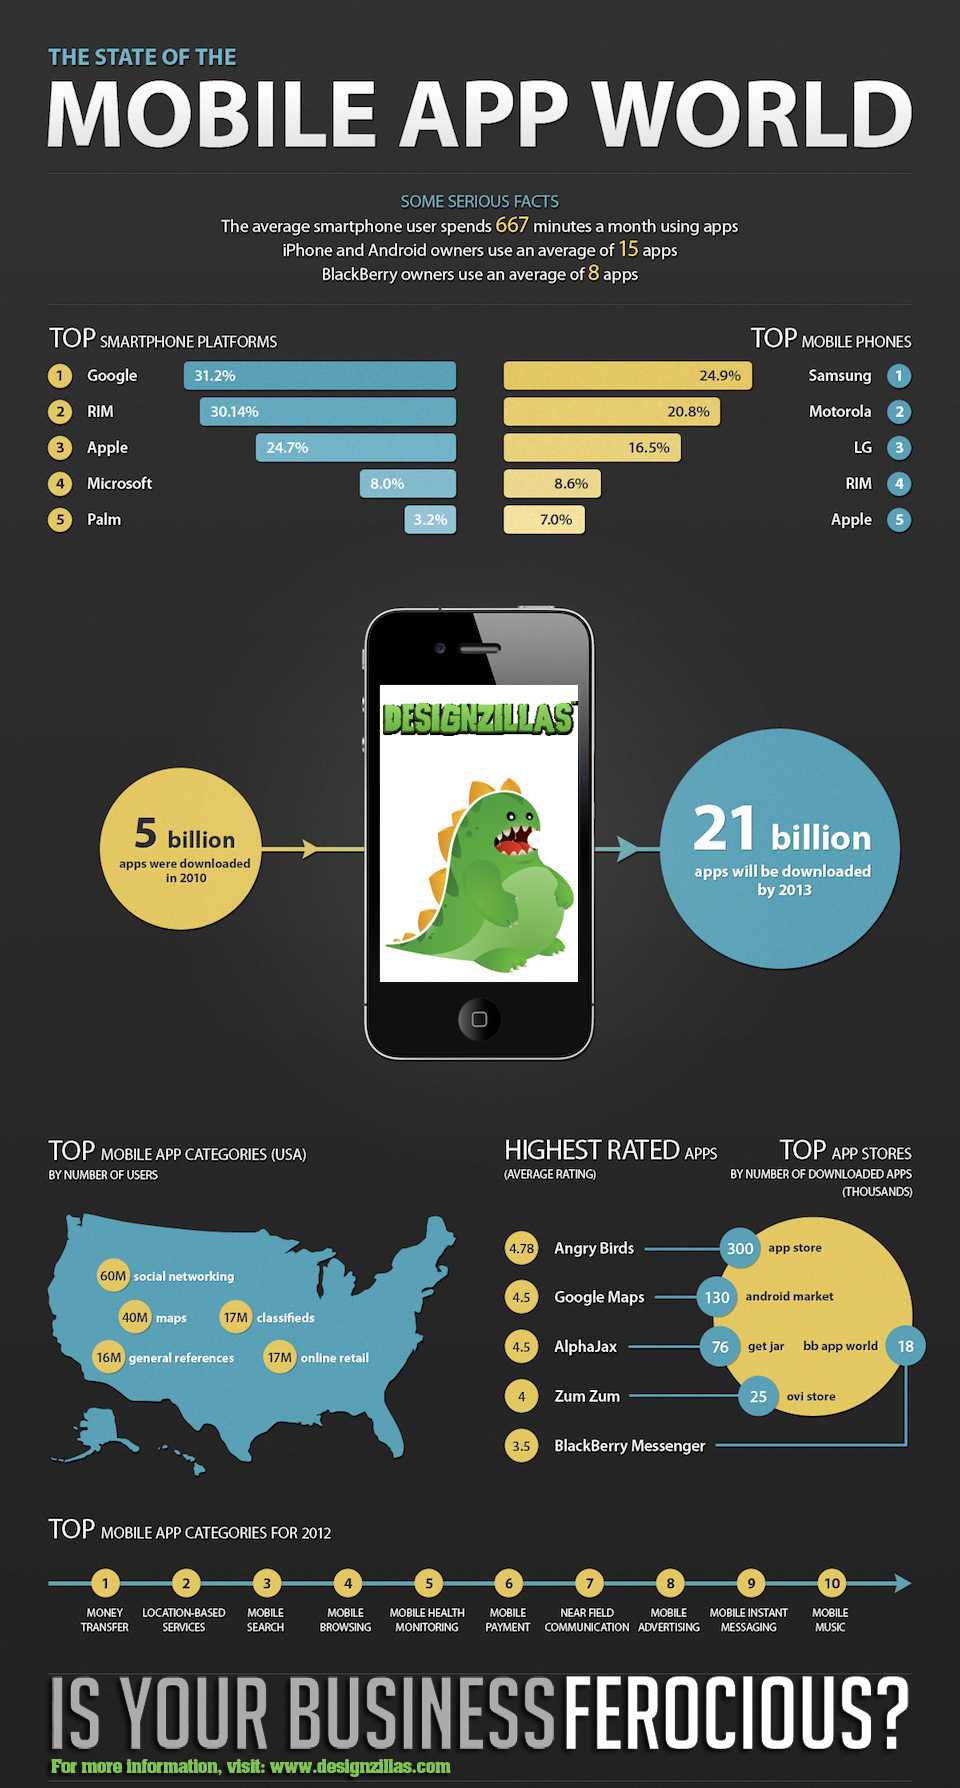 mobile-apps-world-trends-and-status_521226b730a00